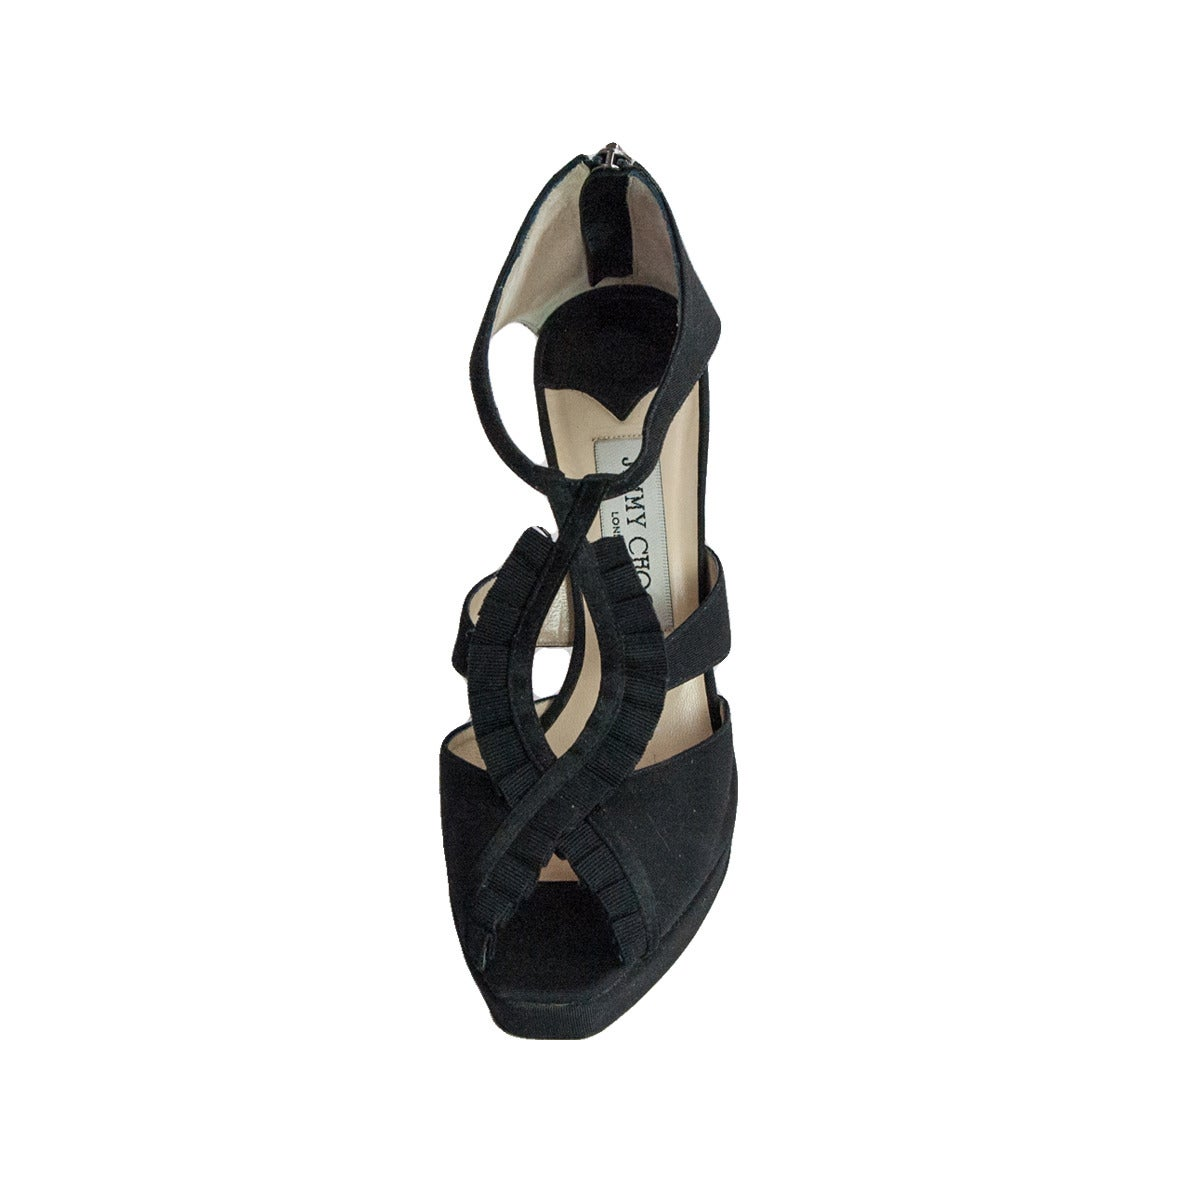 Jimmy Choo Black Satin Sandal 2